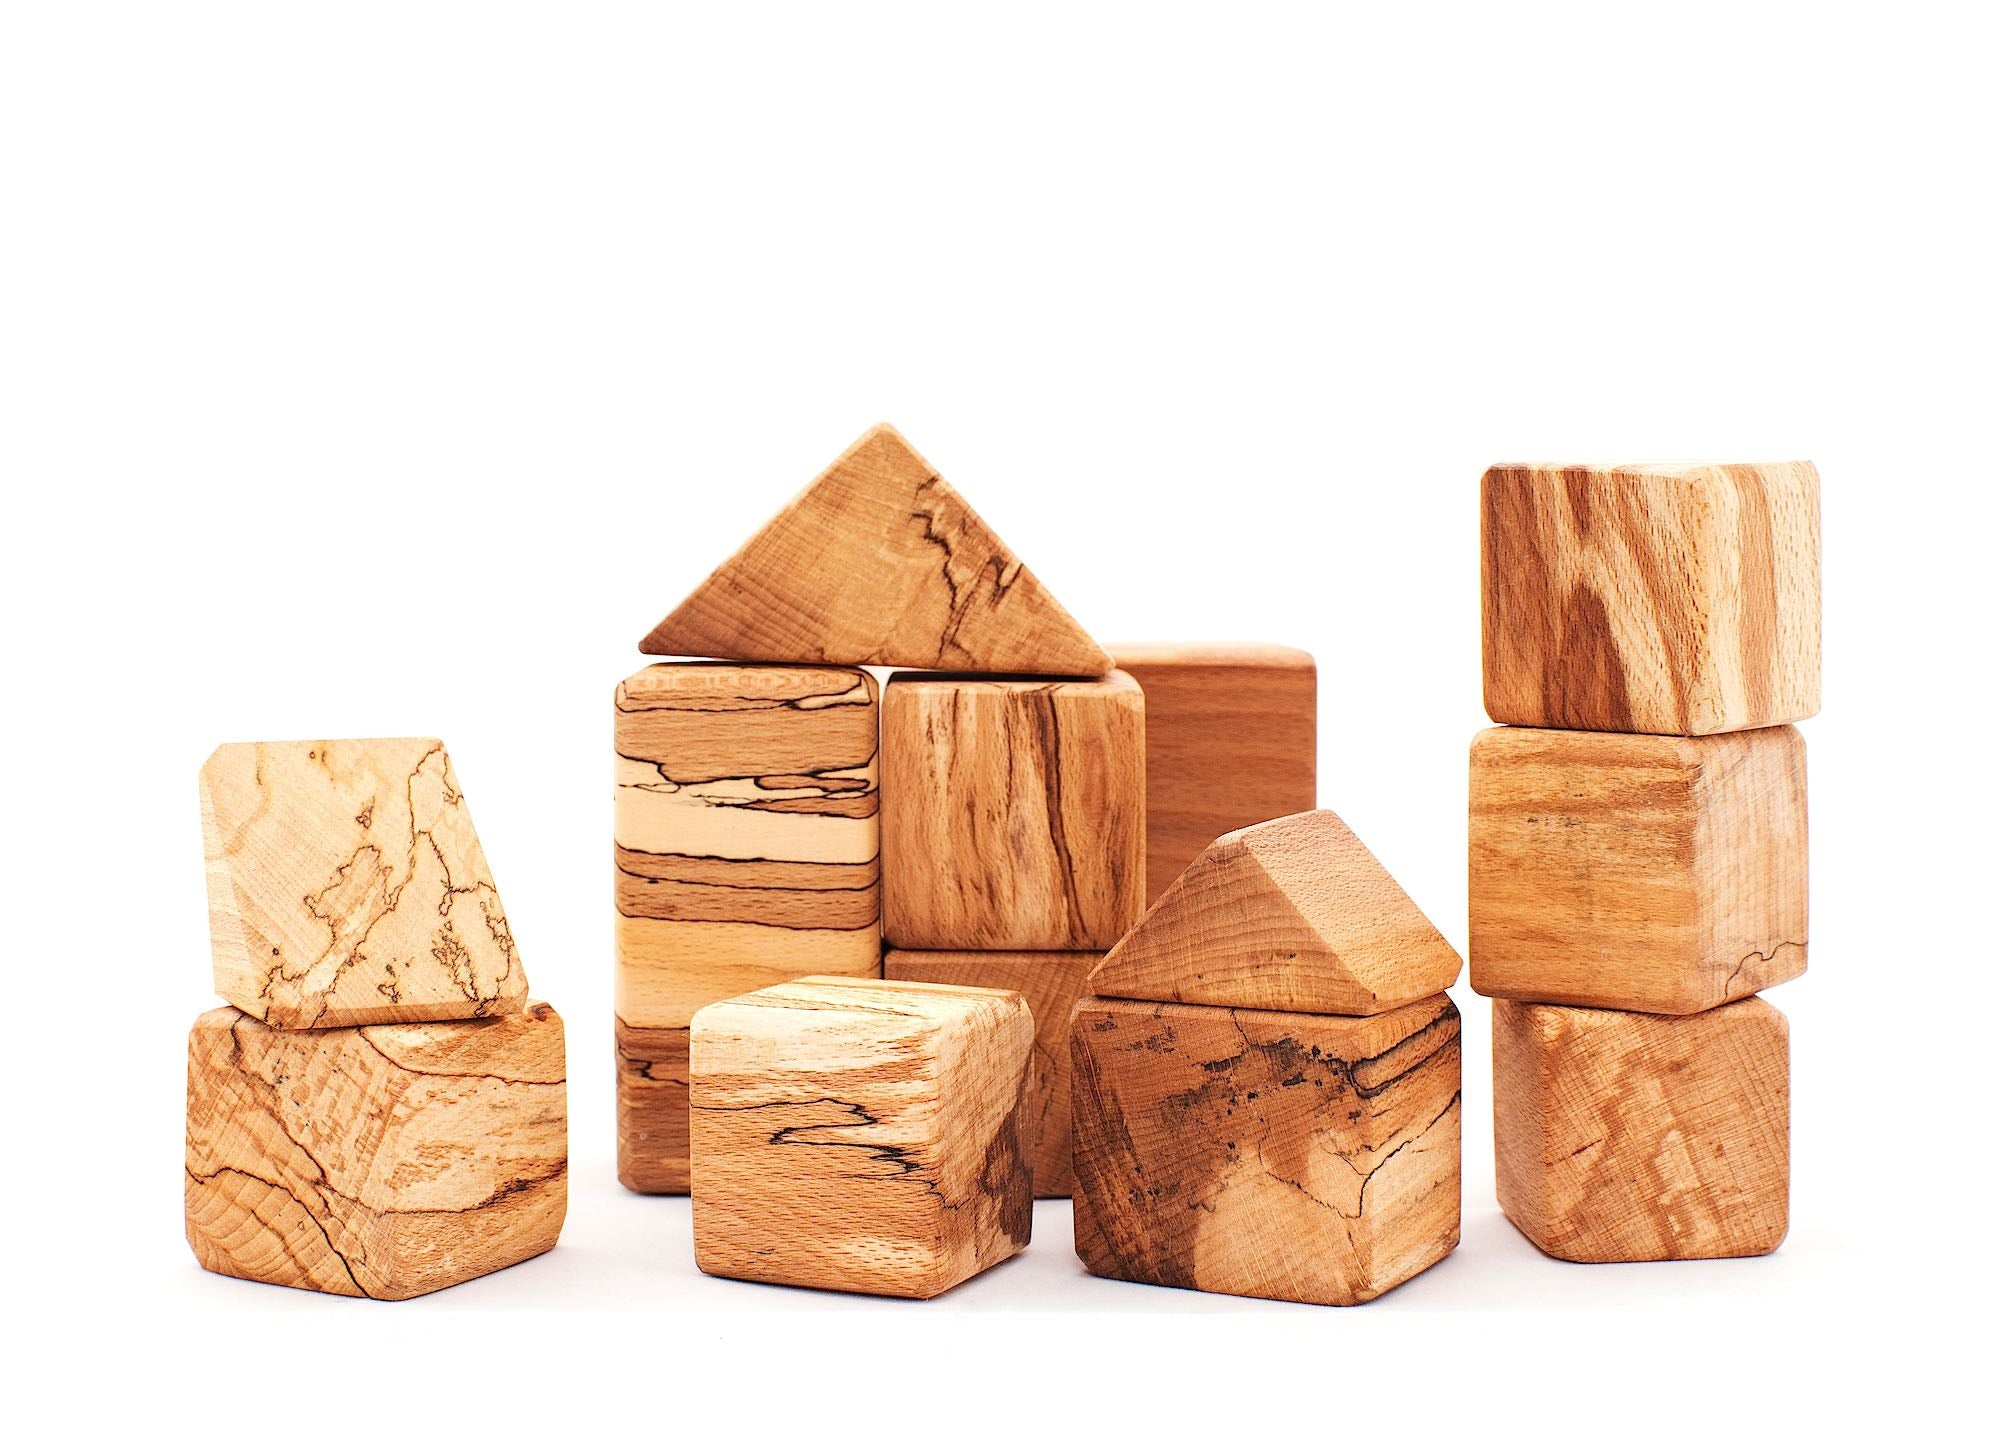 Spalted Beech Wooden Blocks - Moo Like a Monkey